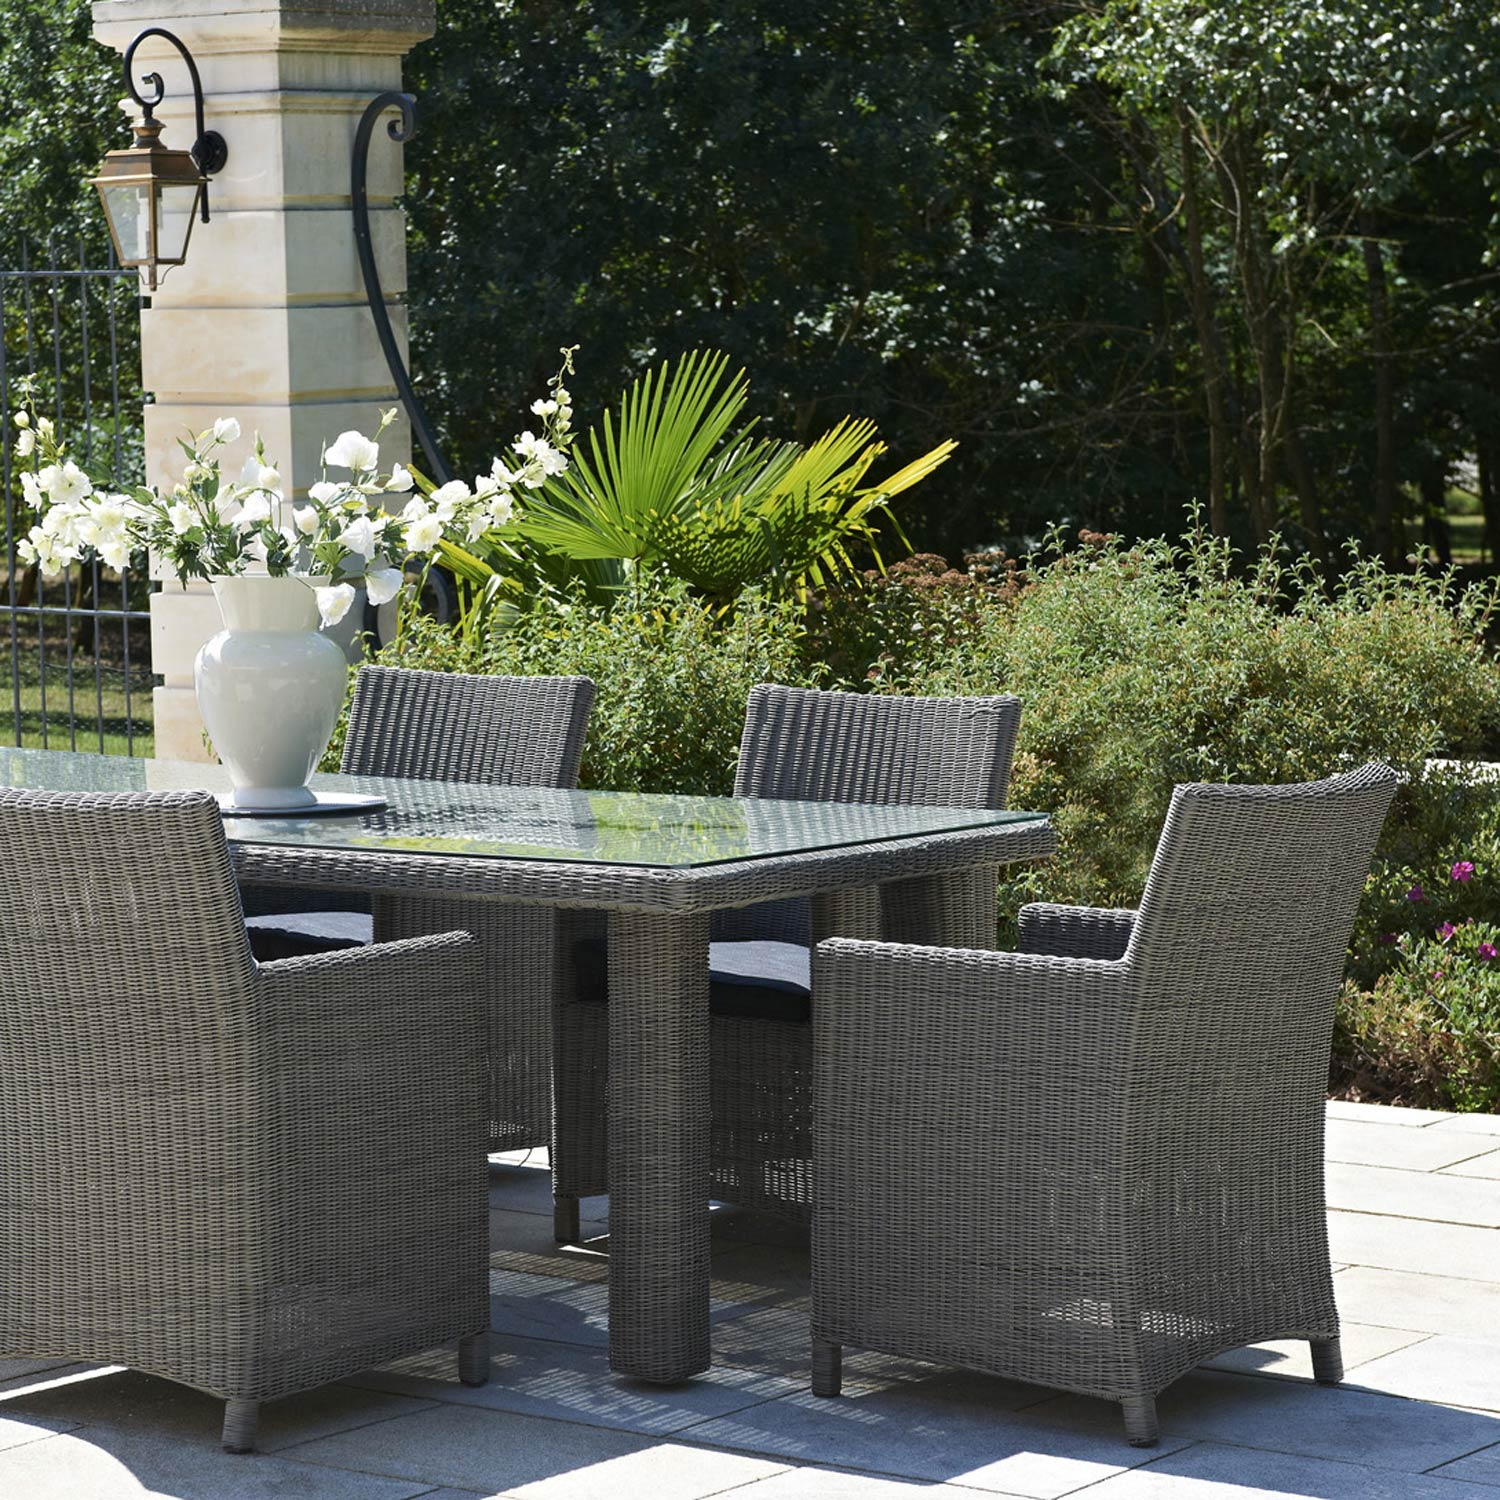 balancelle leroy merlin petit transat balcon salon de jardin leroy merlin with balancelle leroy. Black Bedroom Furniture Sets. Home Design Ideas